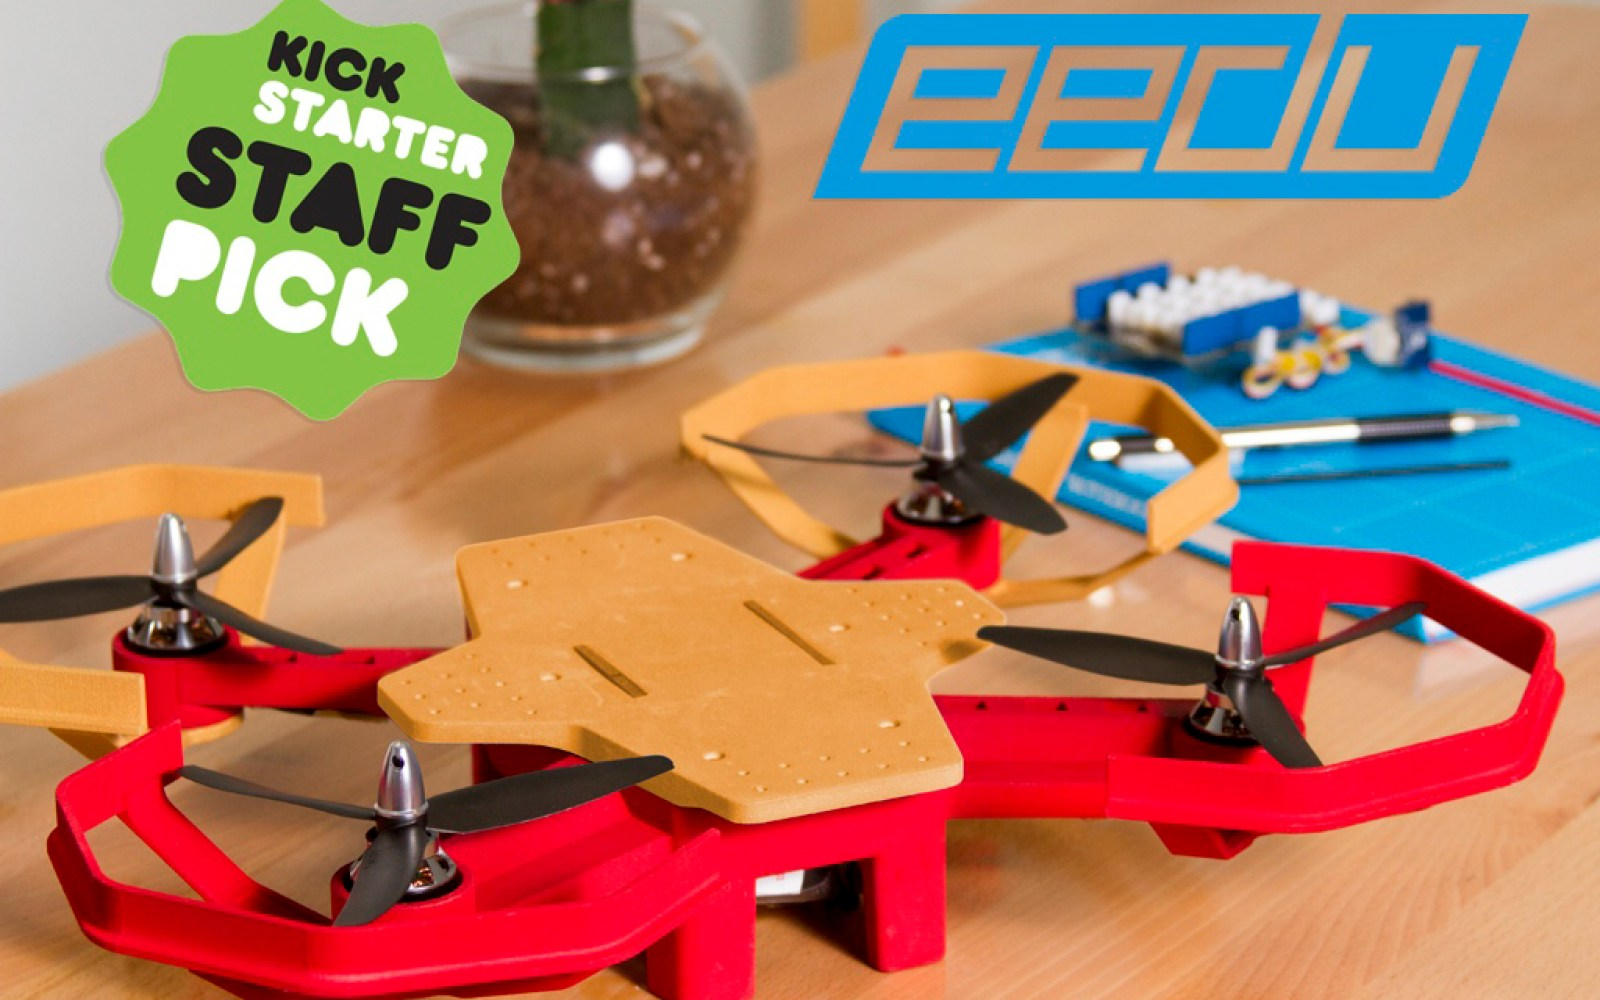 Eedu DIY drone kit uses hands-on learning to teach kids how to code